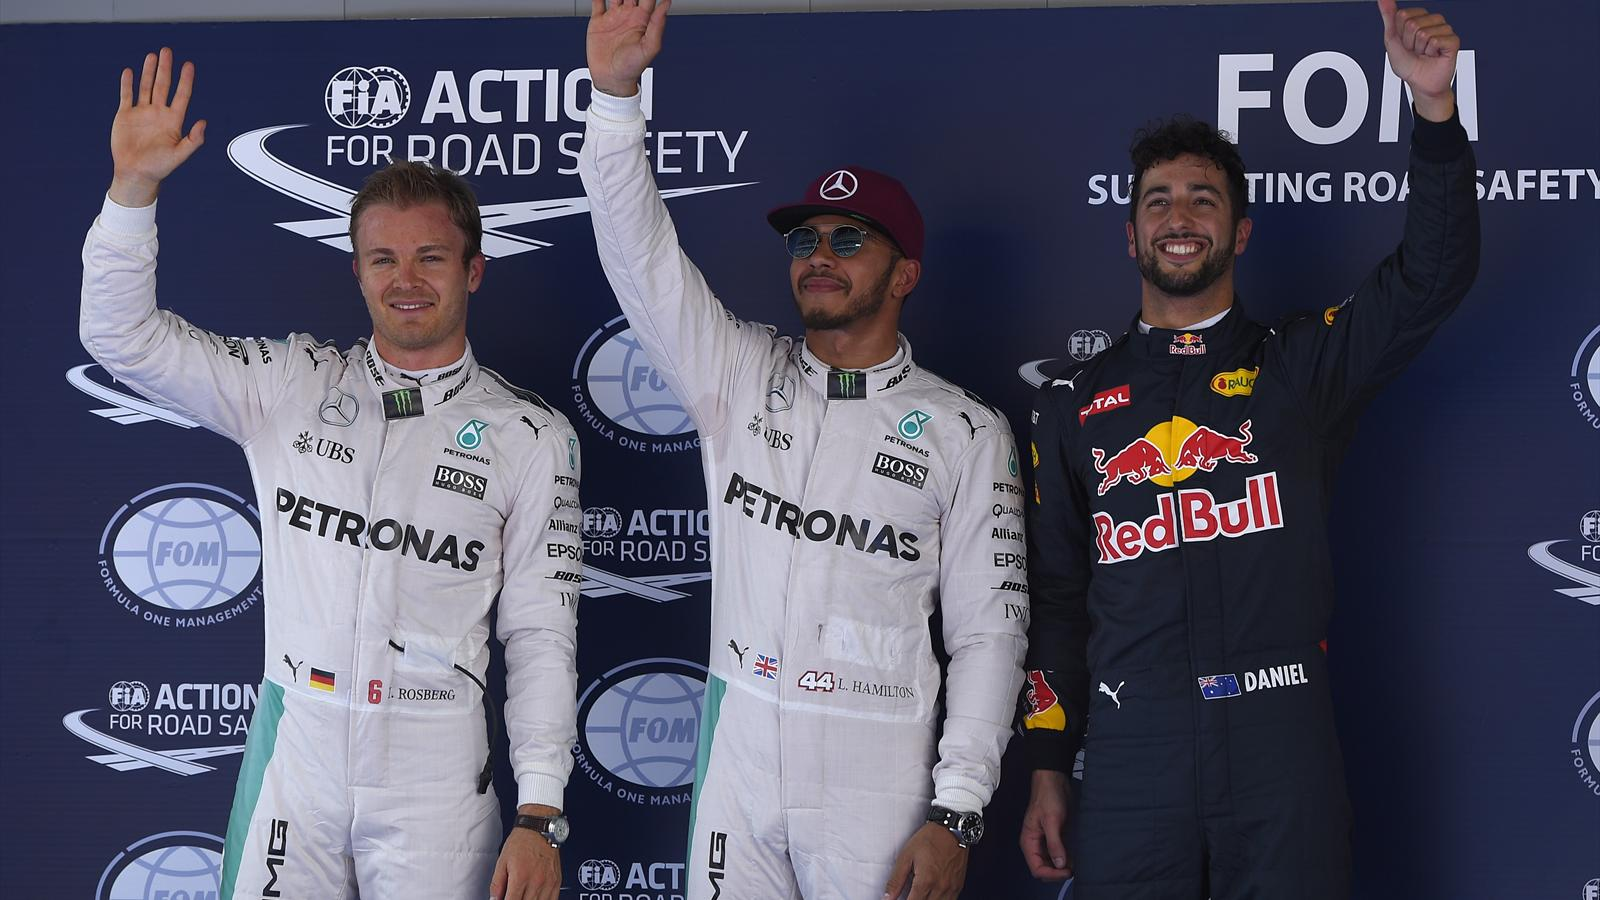 Lewis Hamilton takes pole while Daniel Ricciardo smiles in Spain - Formula 1 - Eurosport Asia